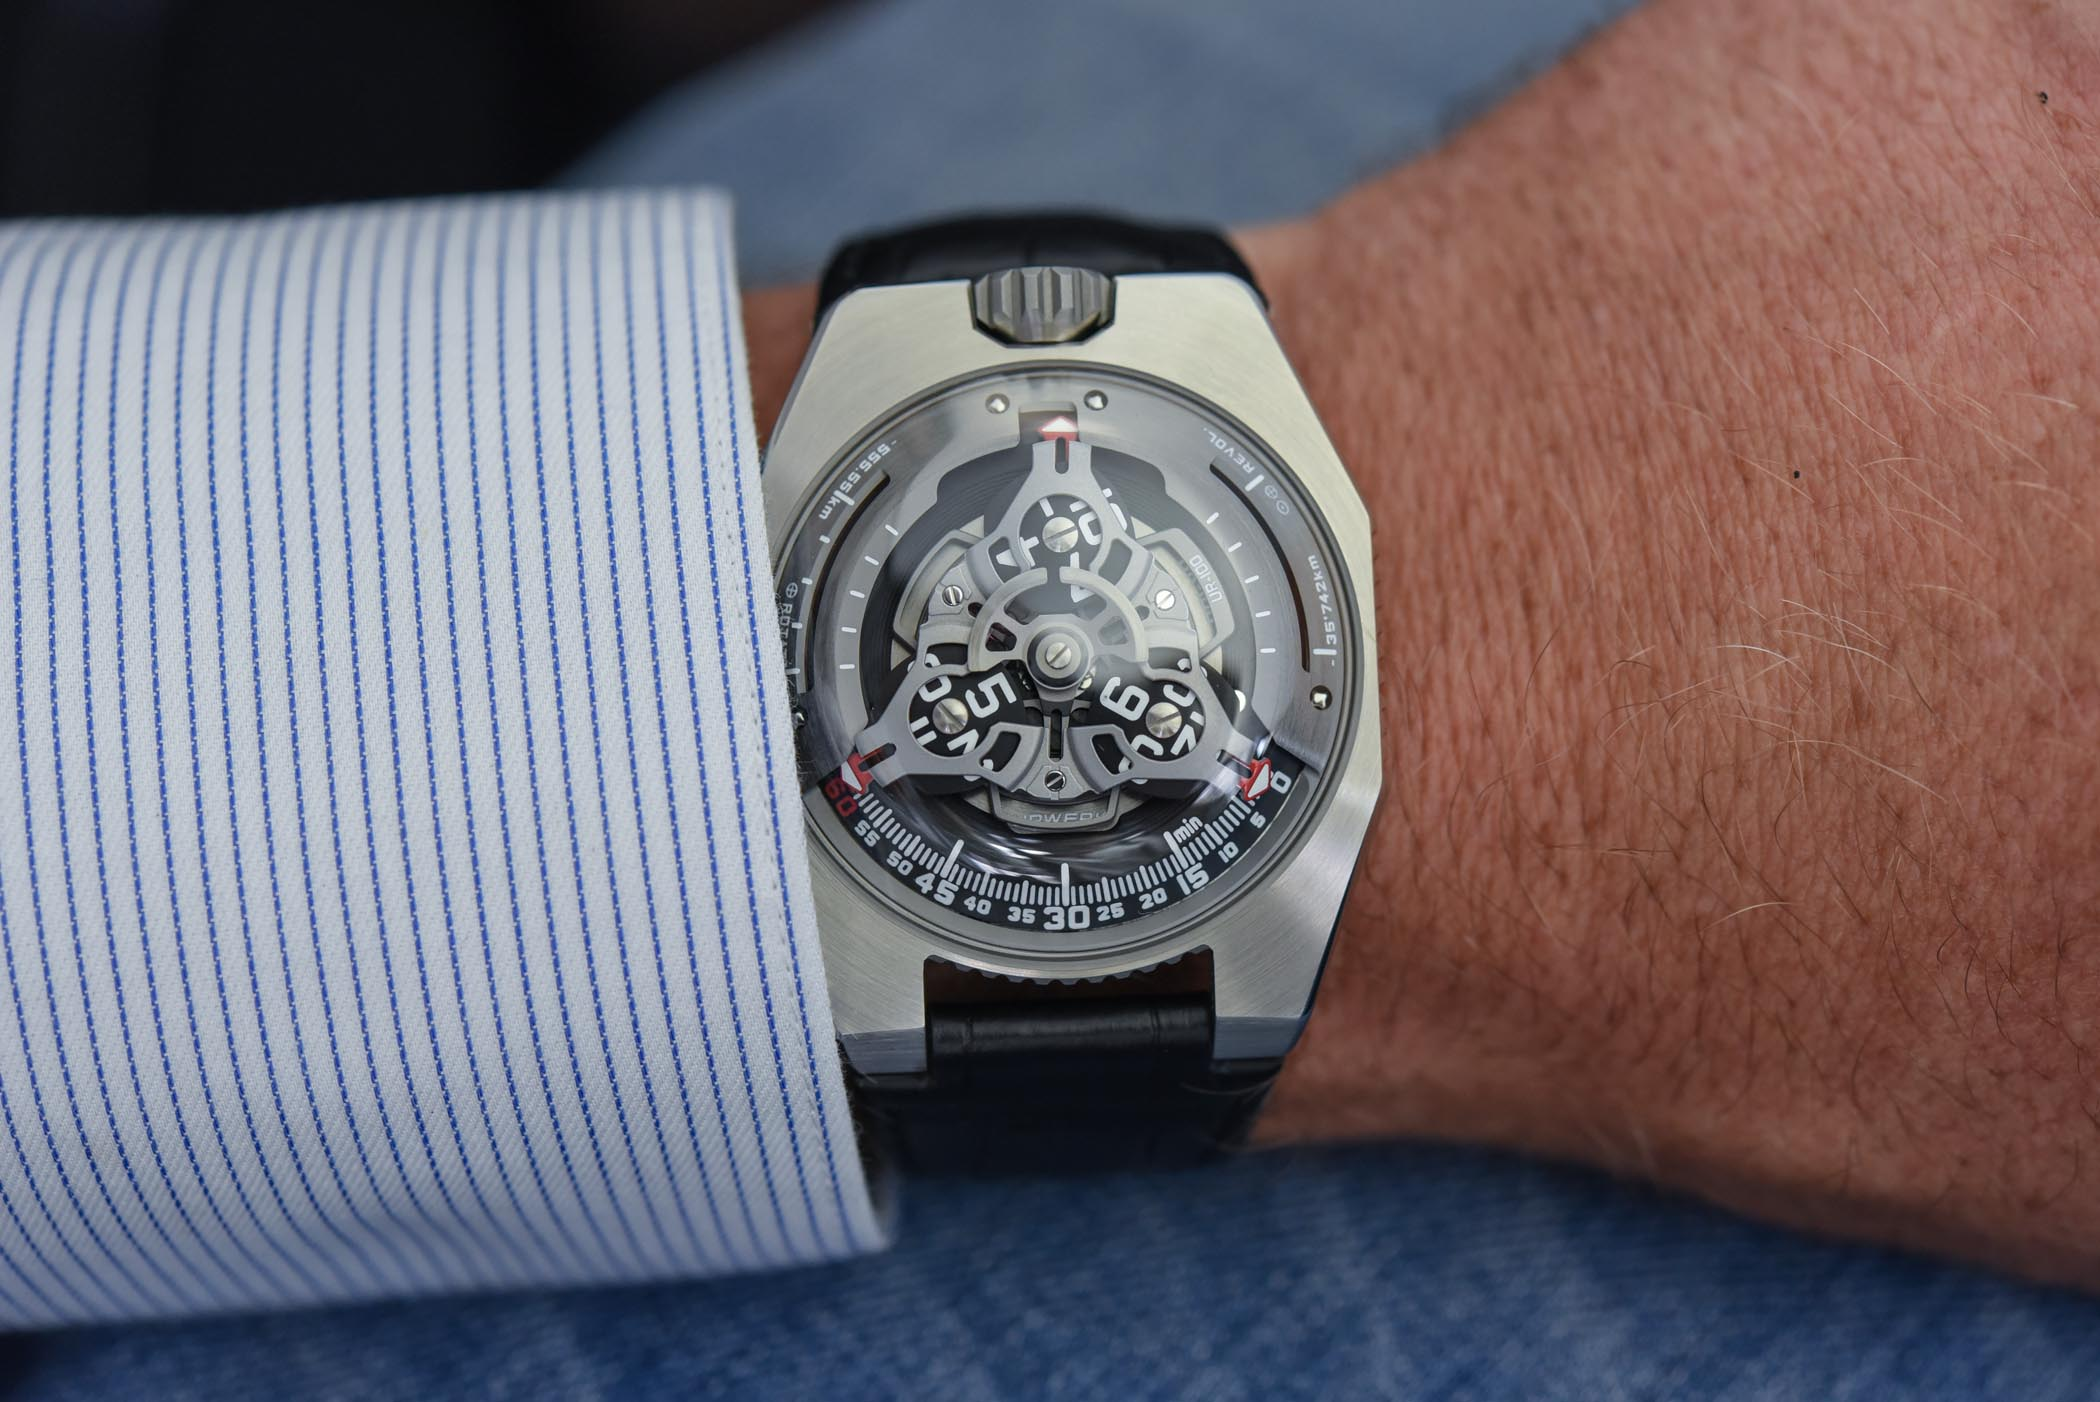 https://k8q7r7a2.stackpathcdn.com/wp-content/uploads/2019/09/URWERK-UR-100-SpaceTime-Review-5.jpg